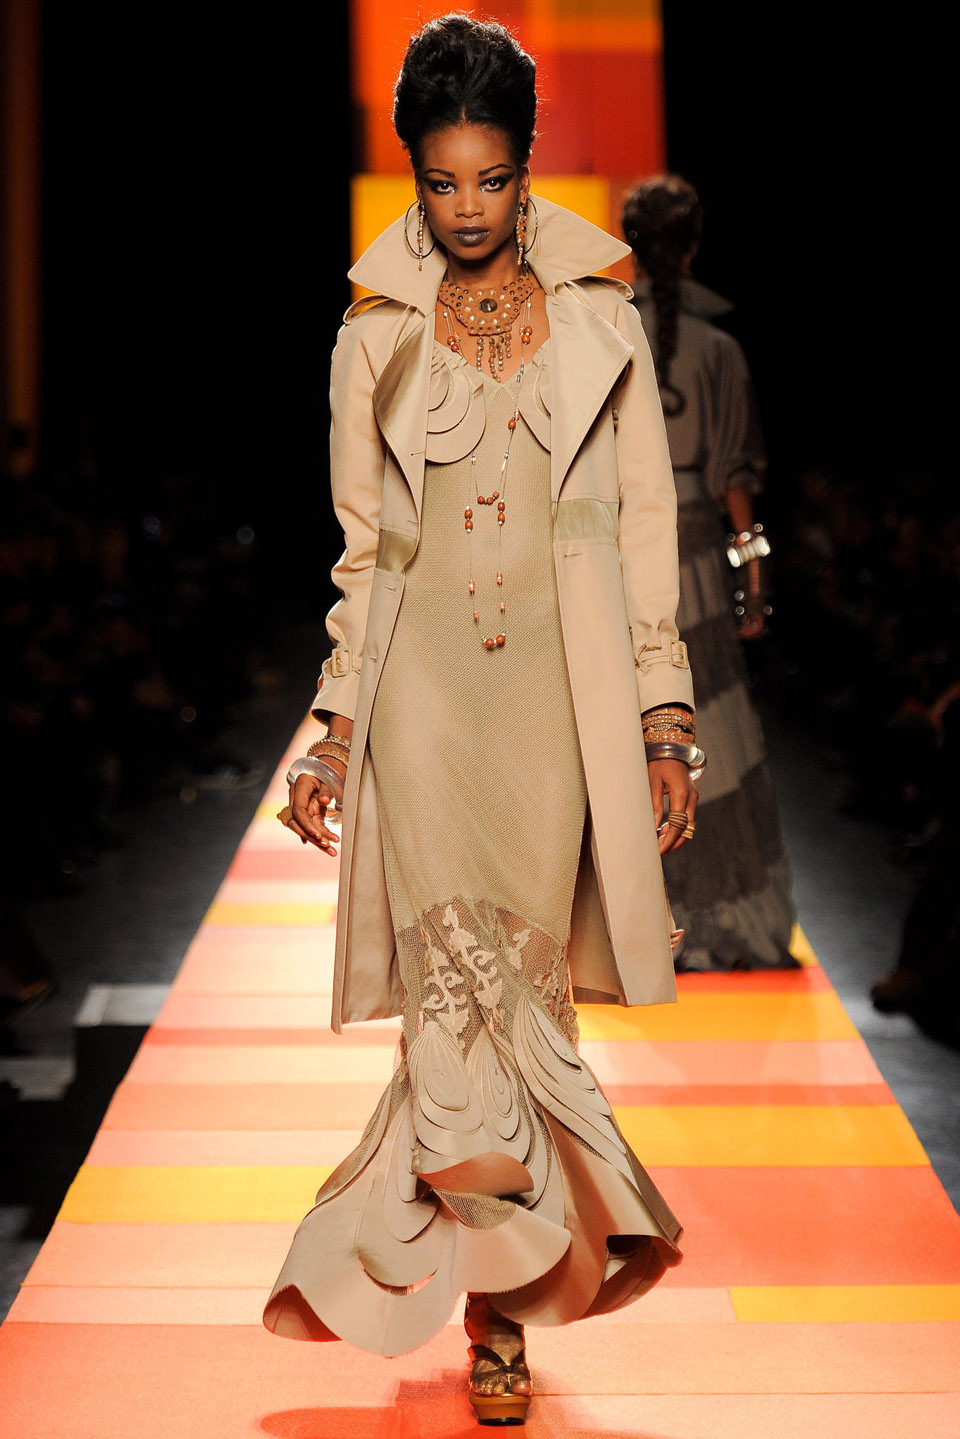 Jean Paul Gaultier Spring - Summer 2013, Haute Couture collection.10